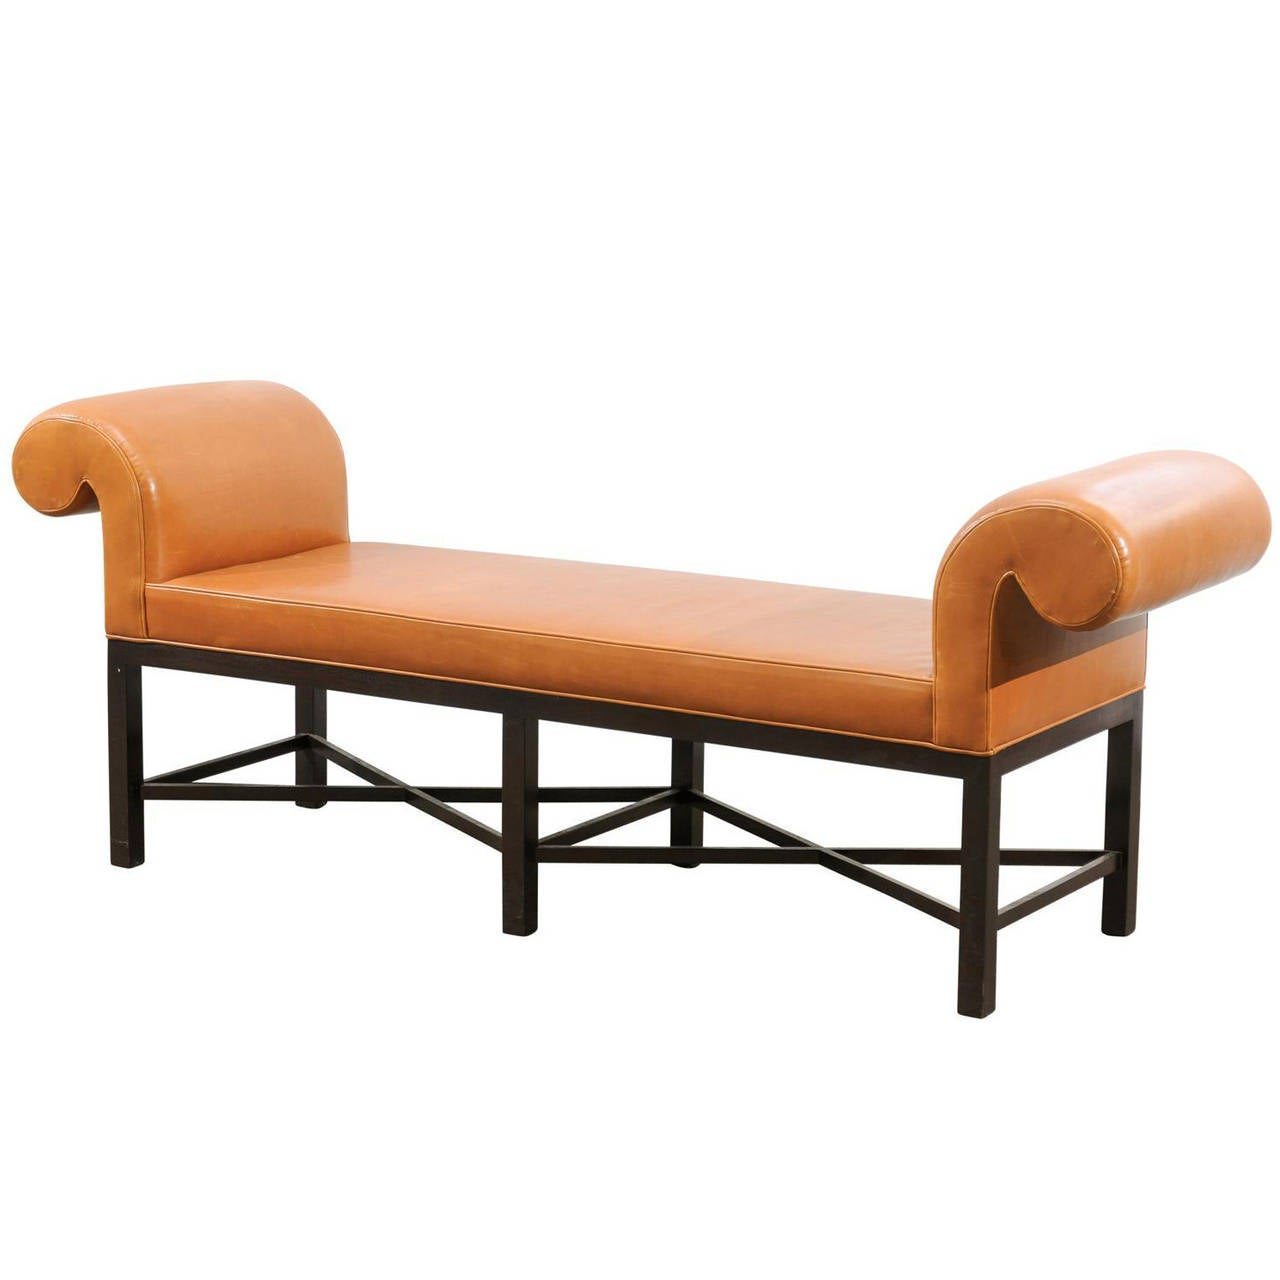 Vintage chppendale bench by baker furniture at 1stdibs for Baker furniture